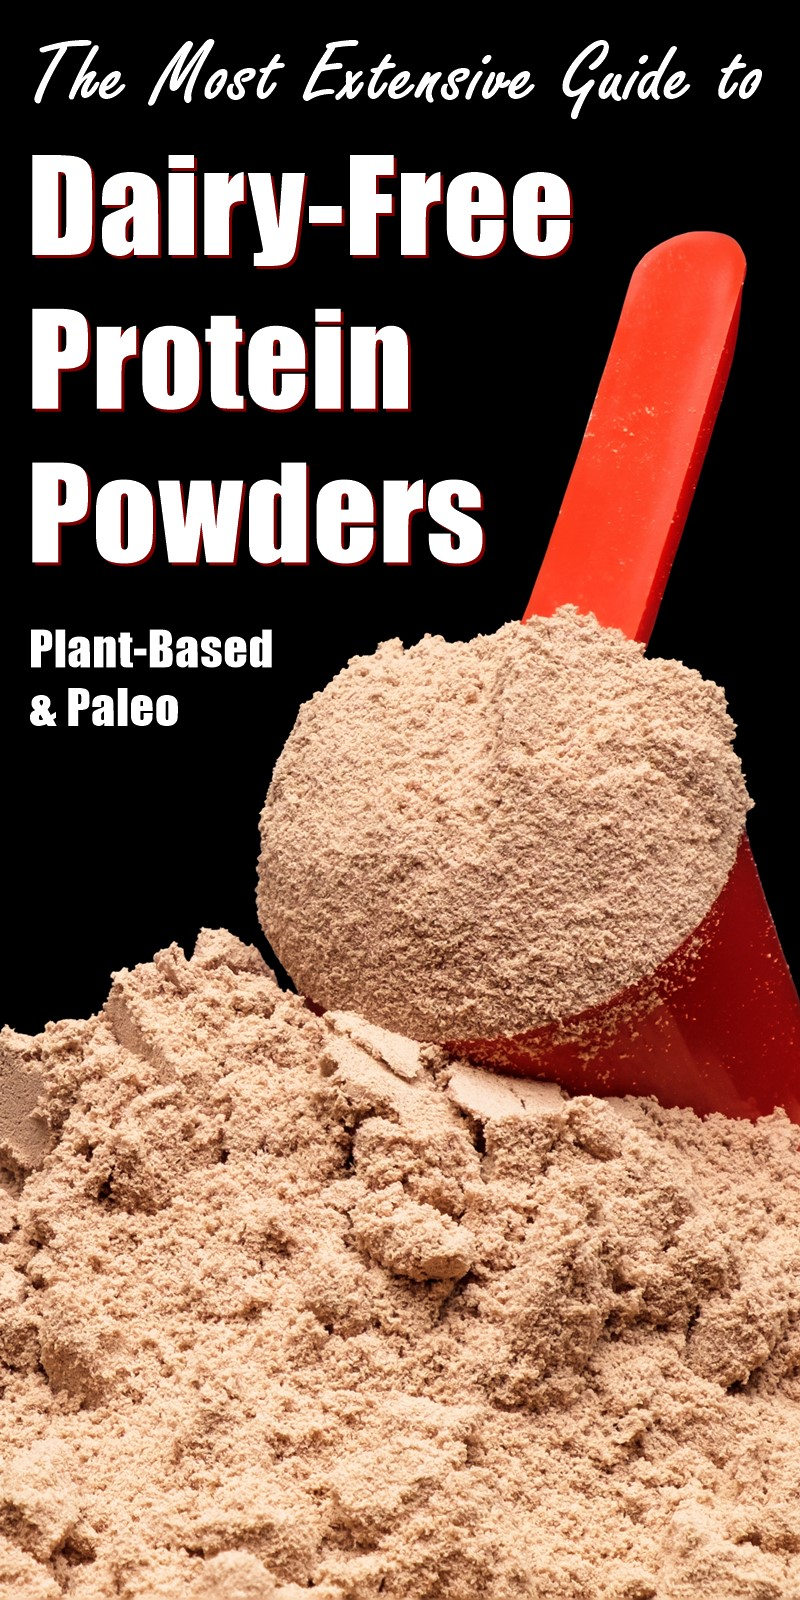 Dairy-Free Protein Powders Guide - The Most Extensive Resource from Go Dairy Free with Plant-Based and Paleo Options